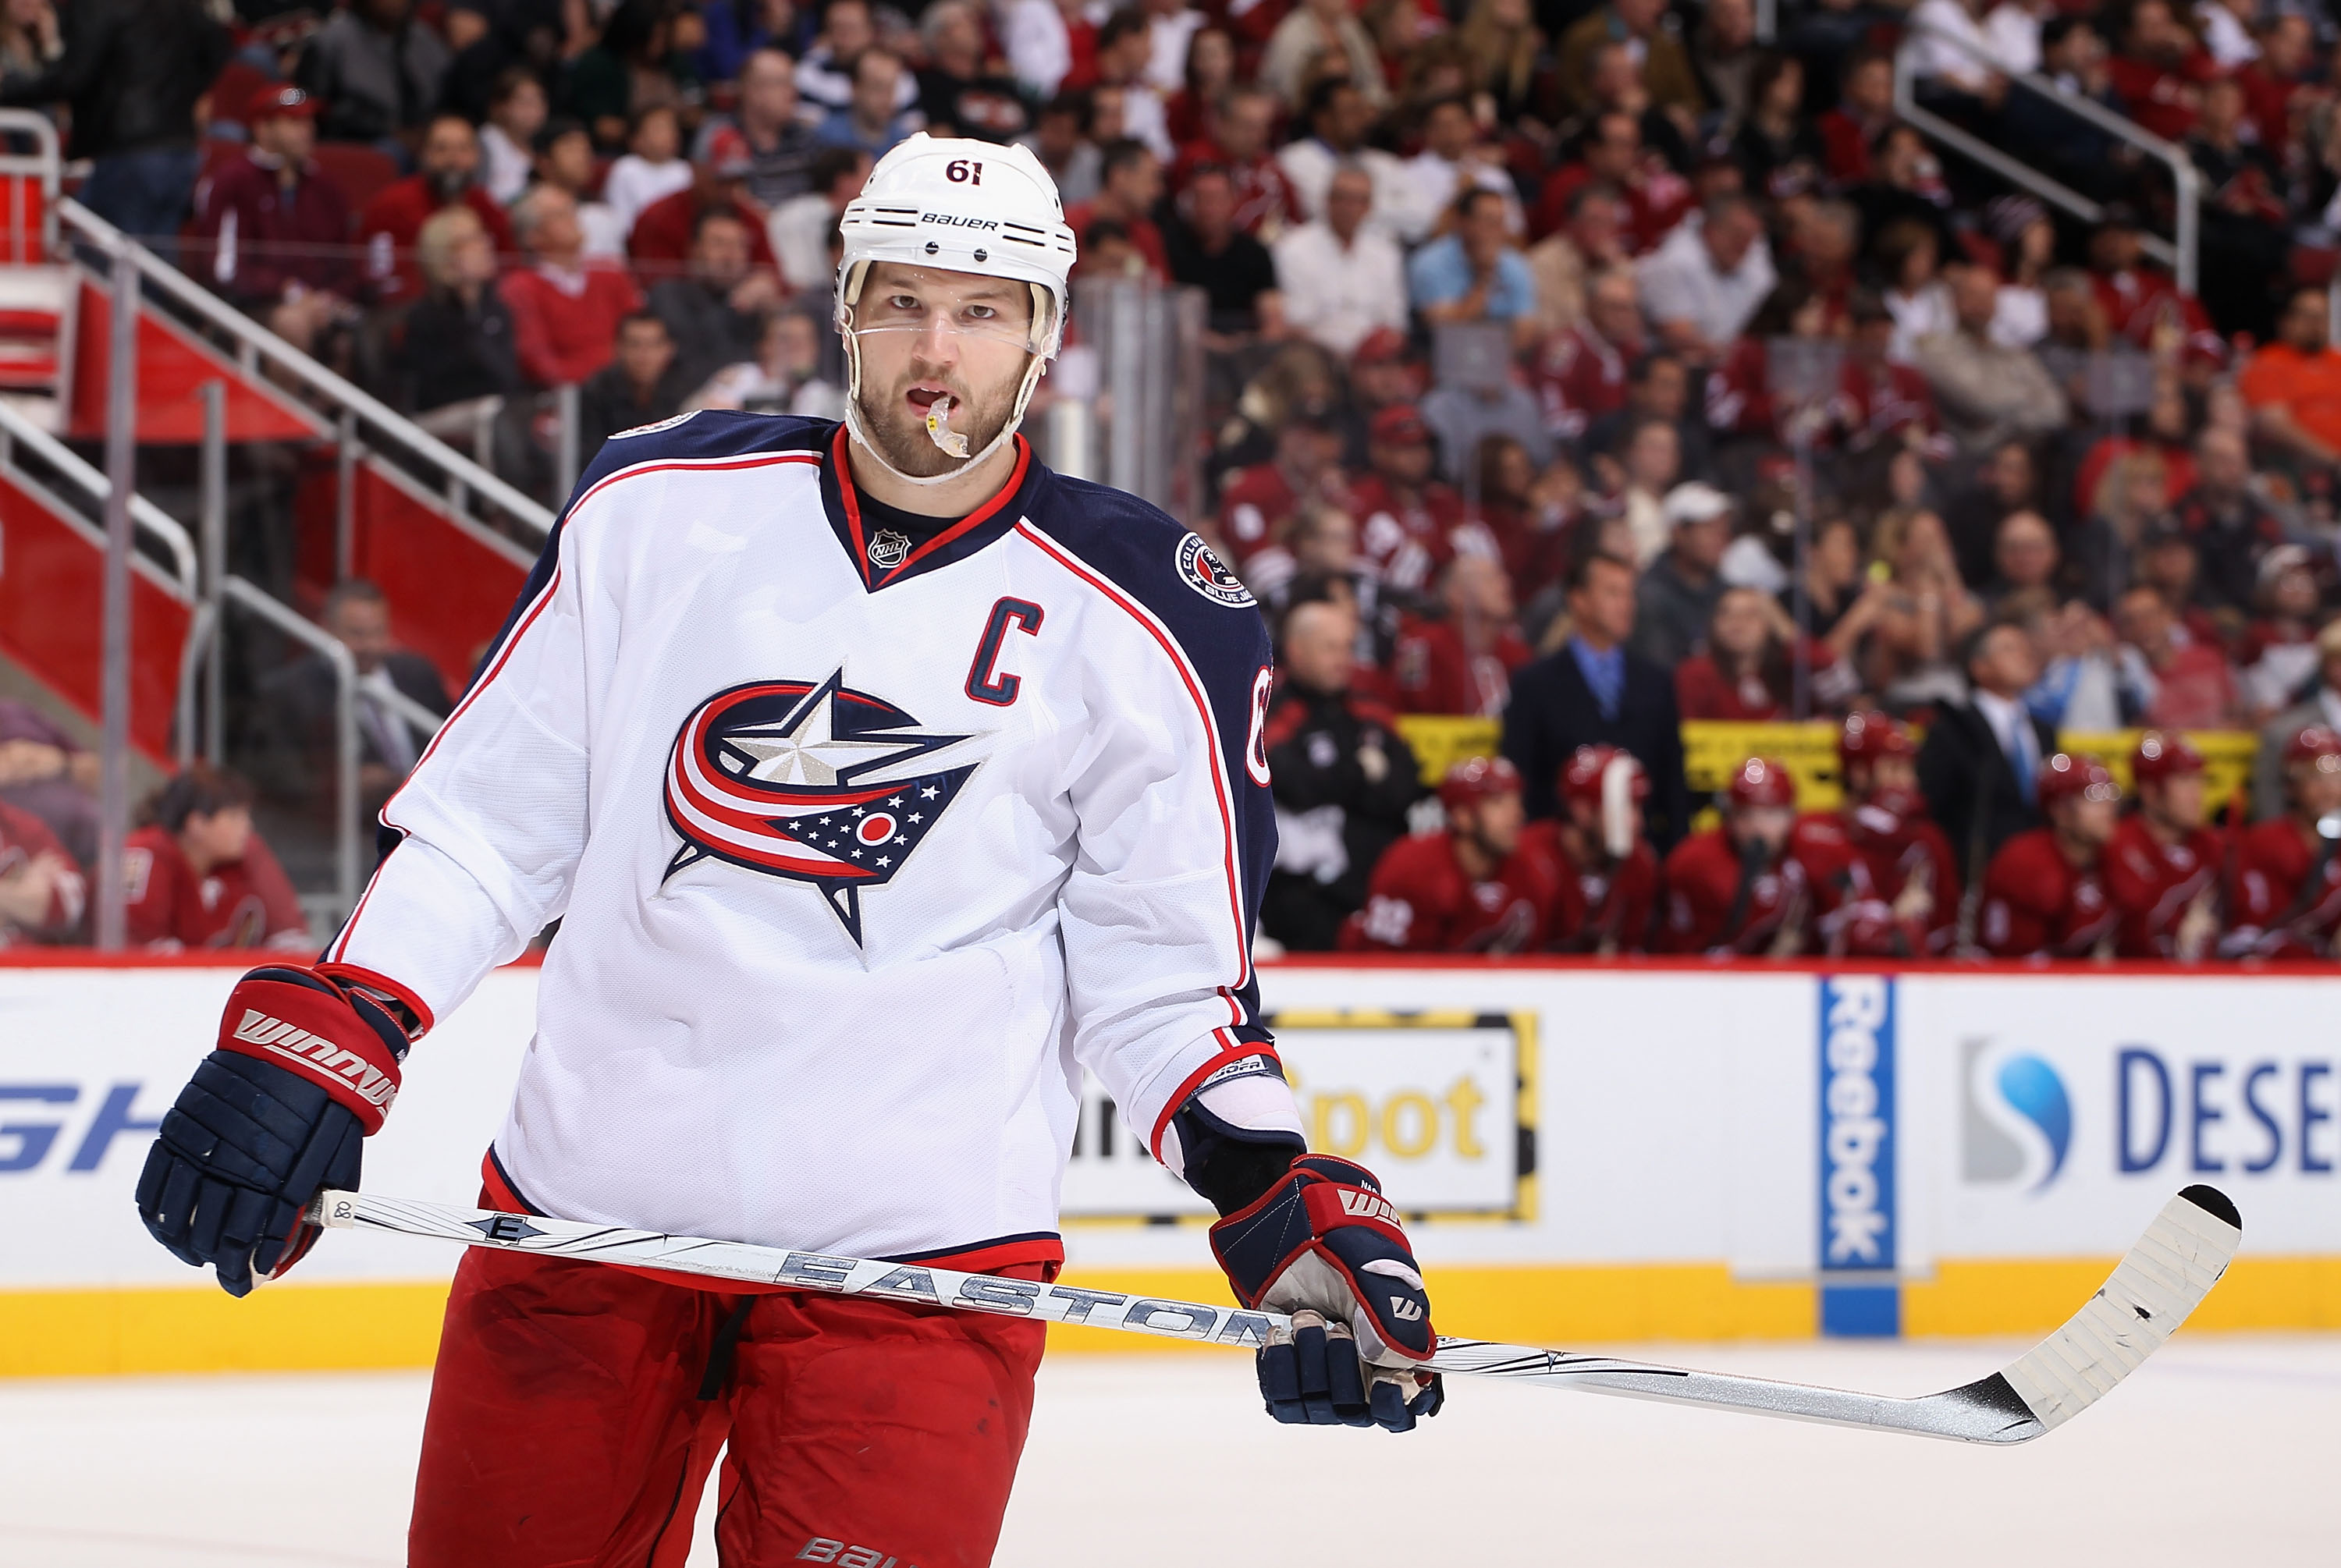 Rick Nash asked out of Columbus, but the Blue Jackets have had difficulty finding the right deal. (Getty)